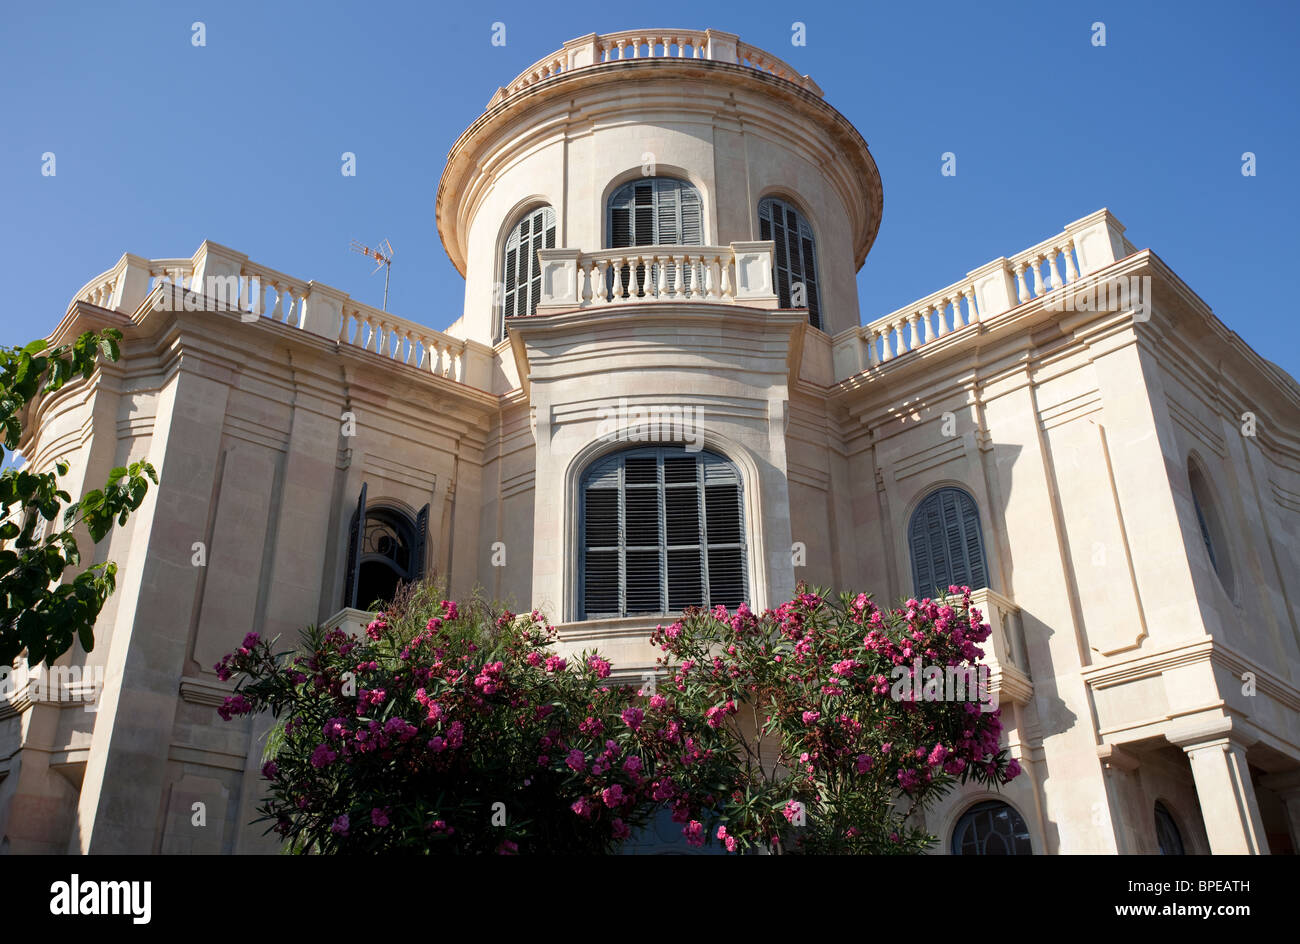 Barcelona Art nouveau architecture in Sant Pol de Mar, Spain - Stock Image